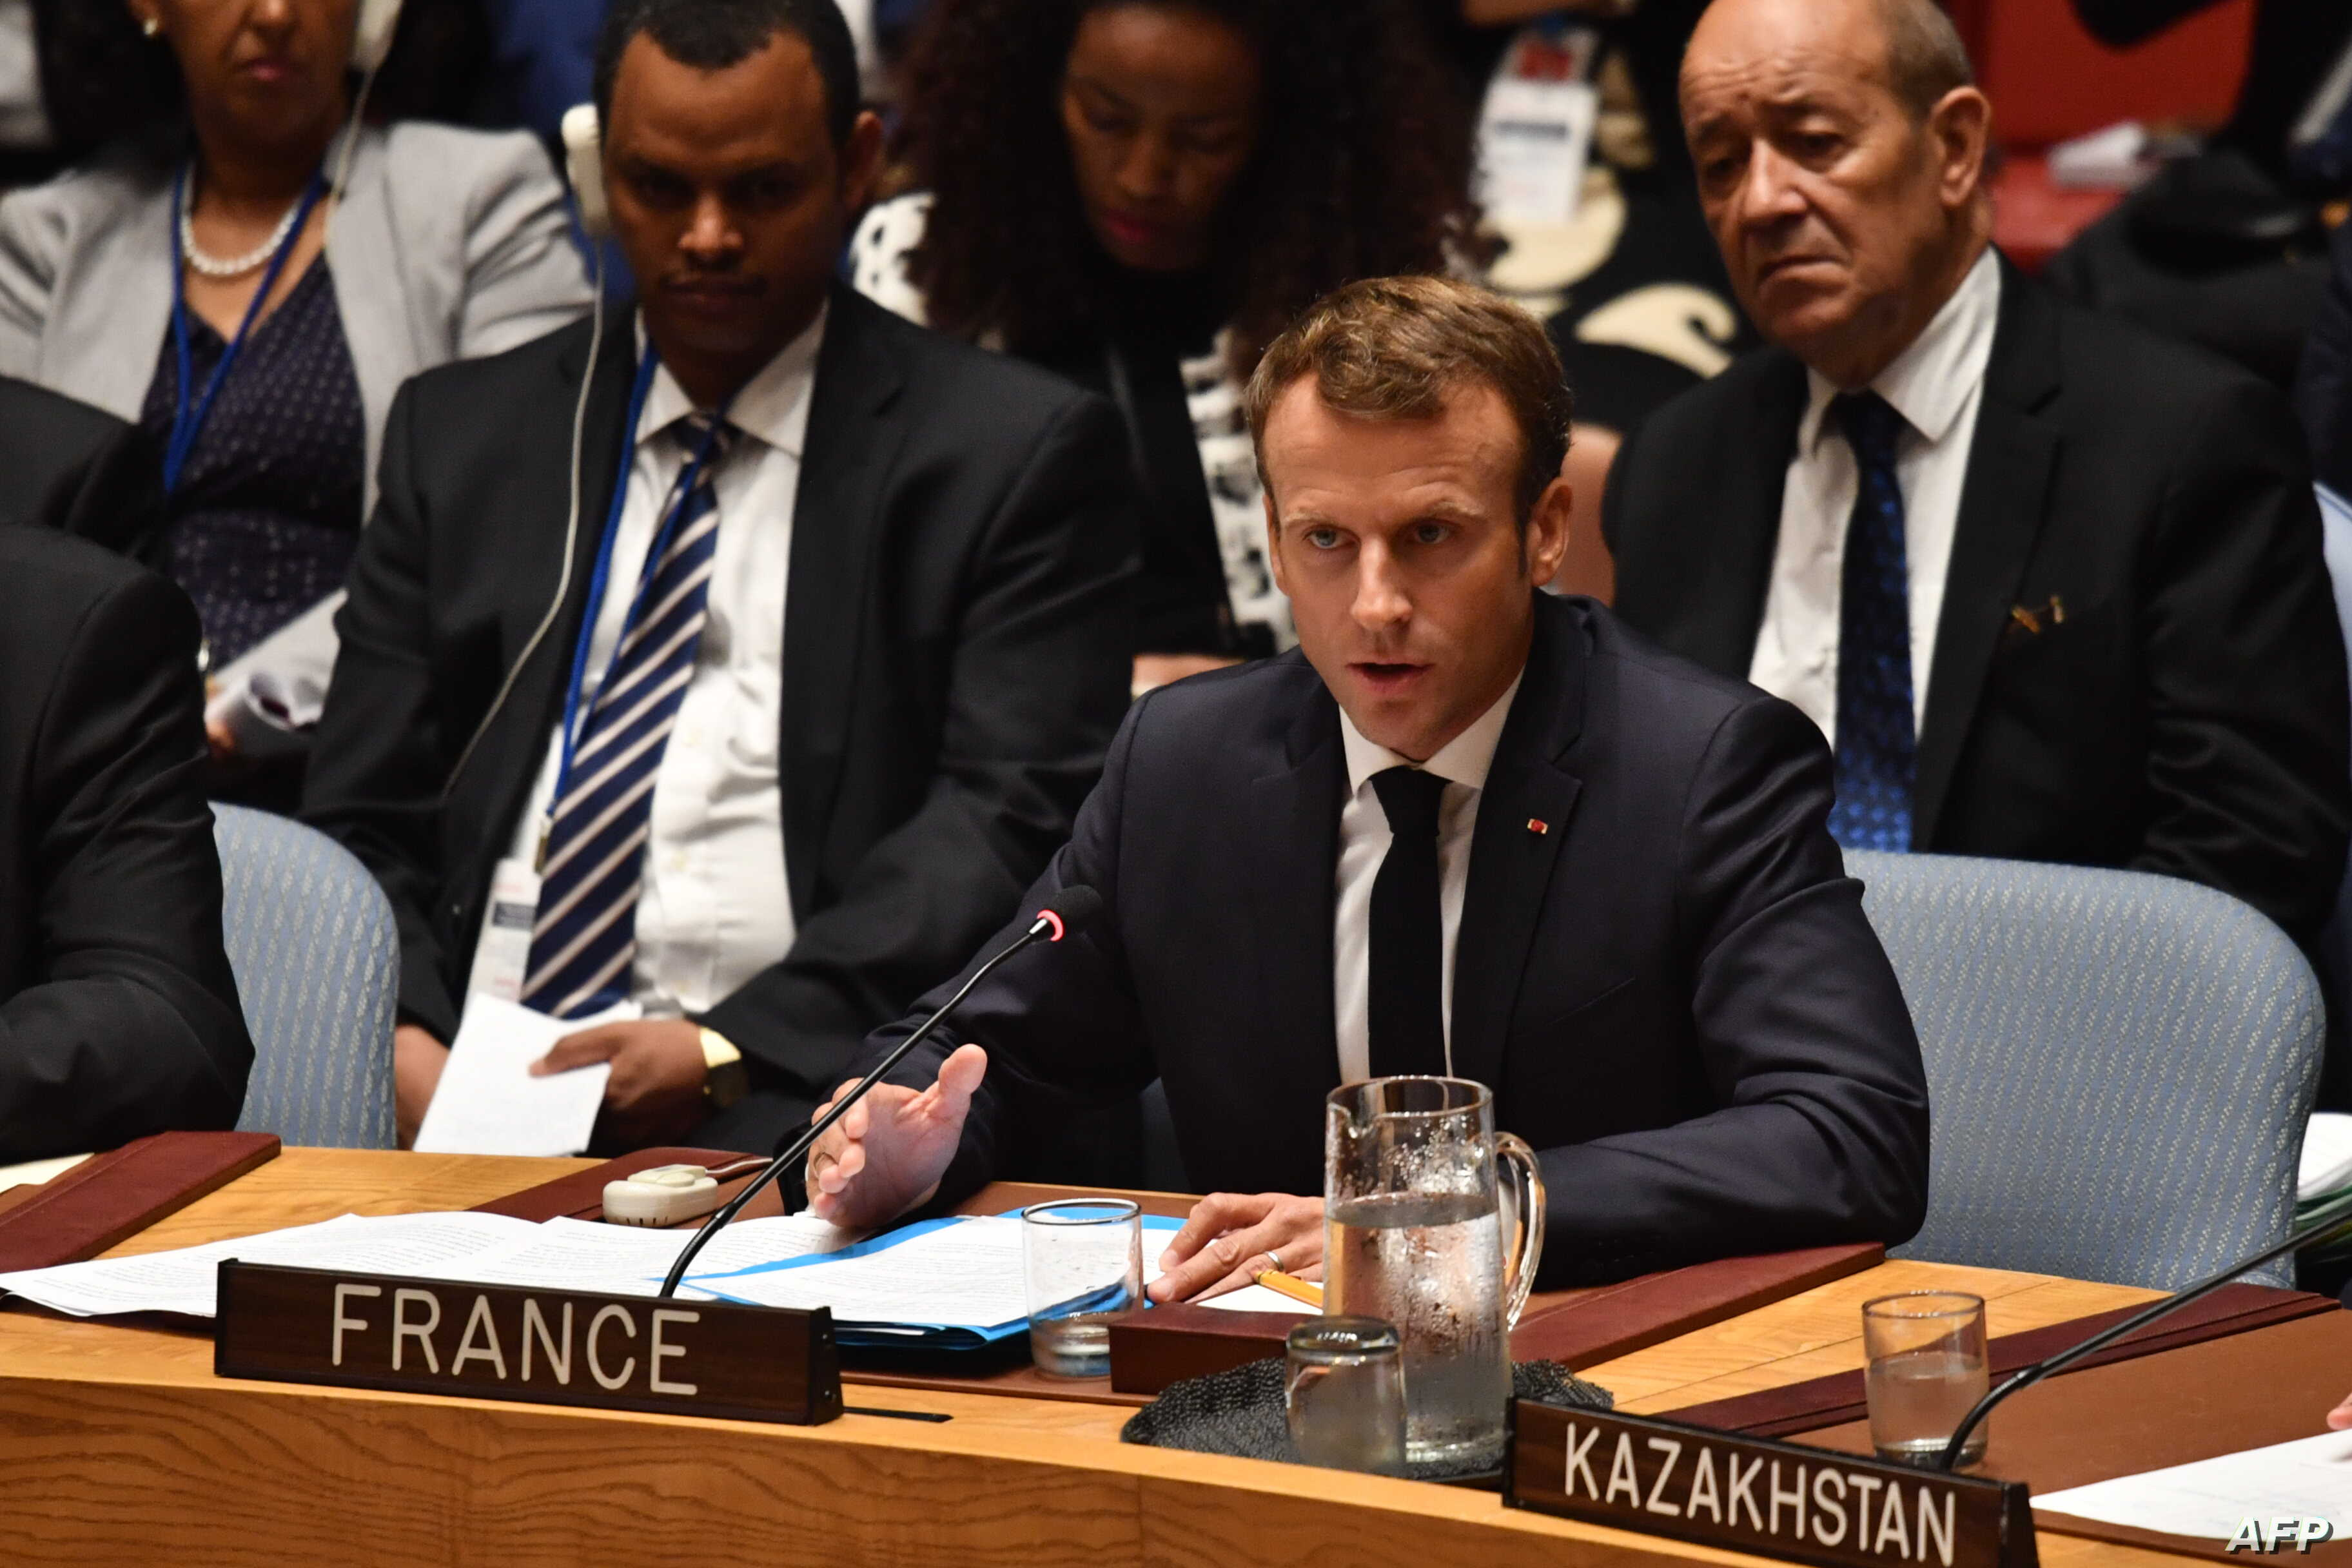 French President Emmanuel Macron speaks during the United Nations Security Council briefing on counterproliferation at the United Nations in New York on the second day of the UN General Assembly, Sept. 26, 2018.